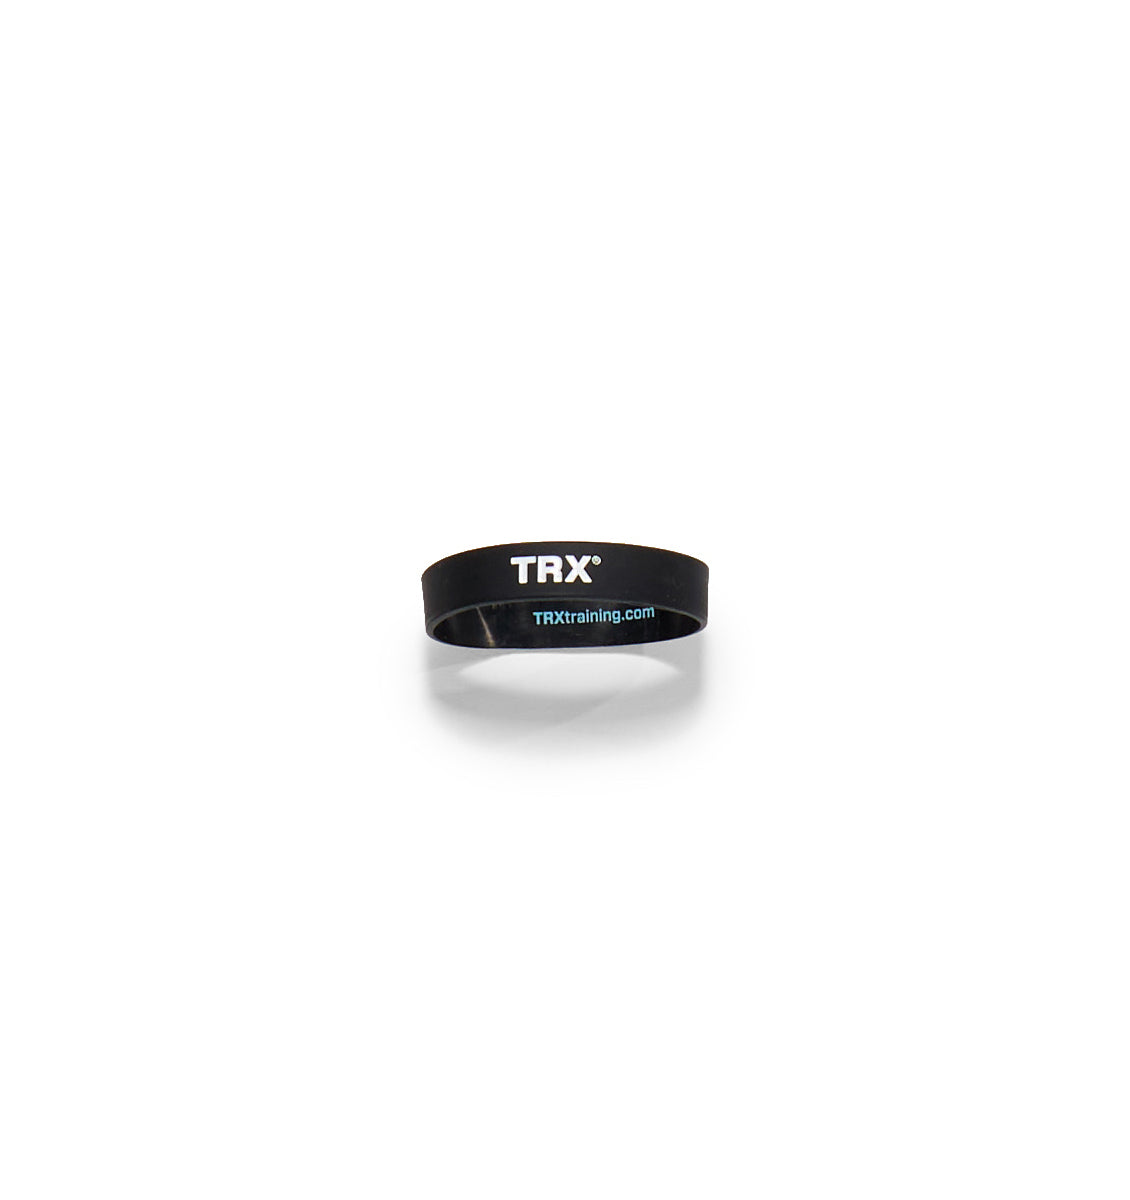 TRX1STRONG000 TRX TRX STRONG Suspension System Wrist Band